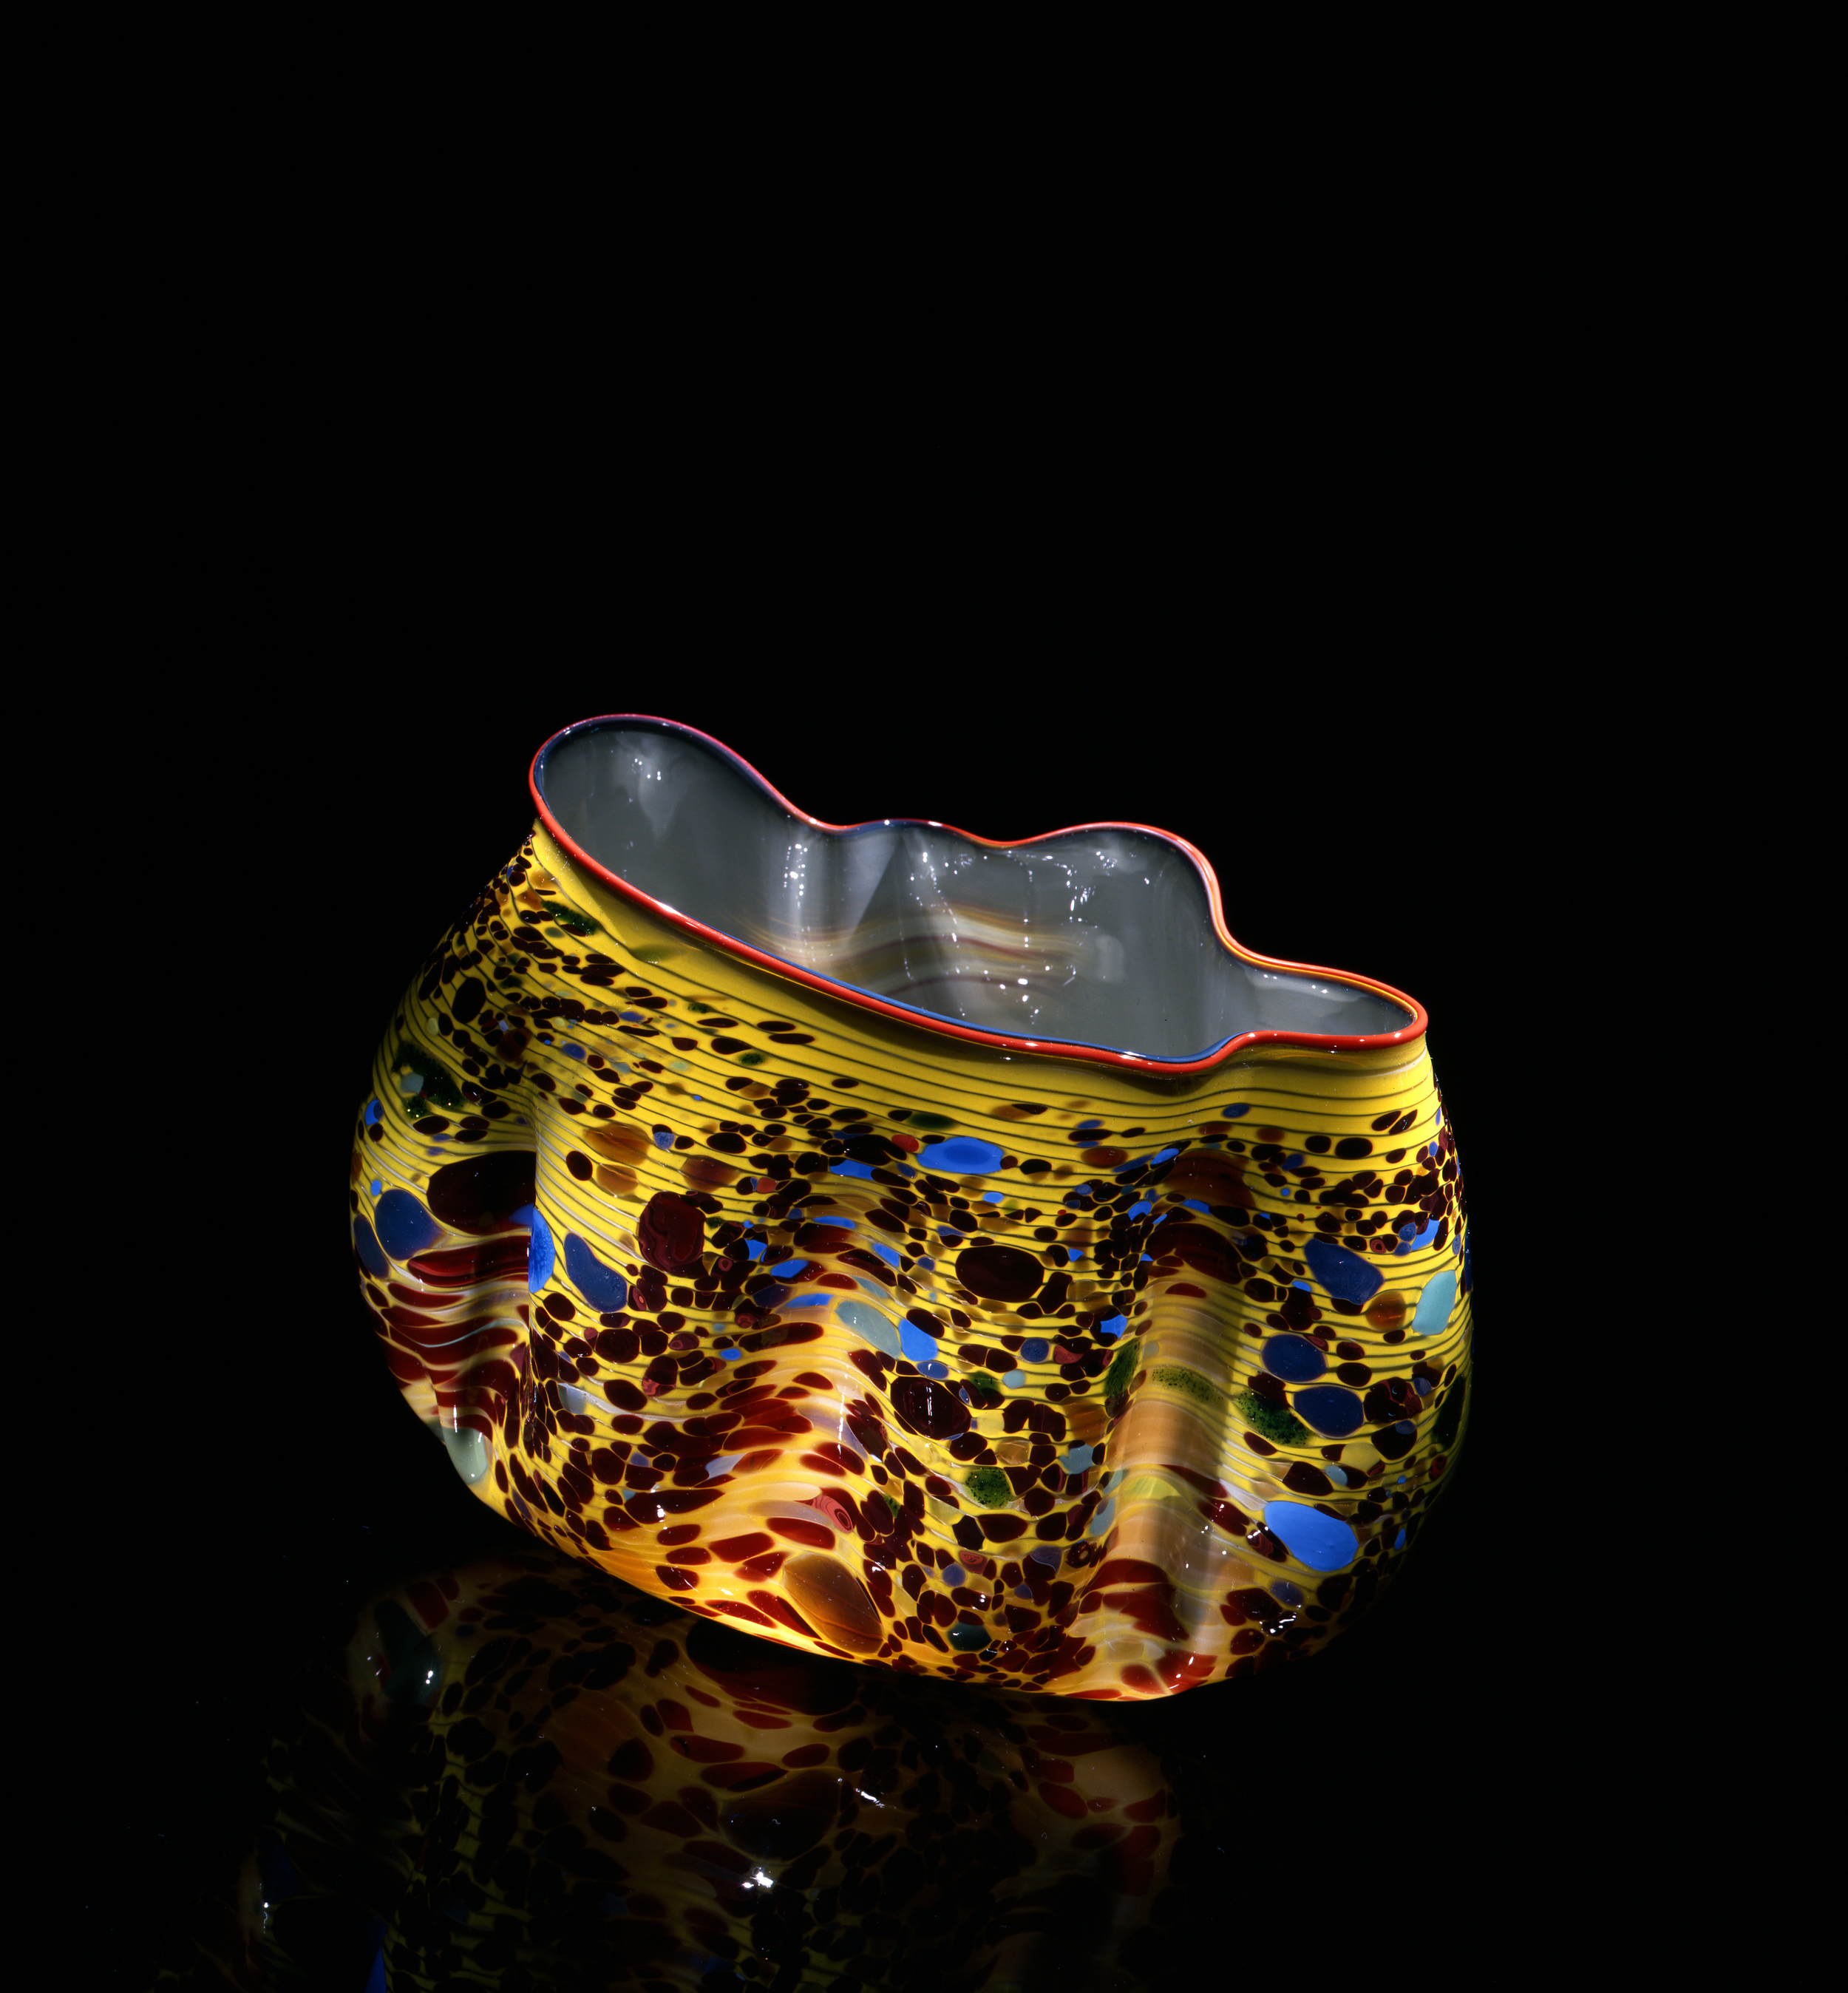 Dale Chihuly, Willow Macchia with Persimmon Lip Wrap (1982, glass, 7 x 9x 6 inches), DC.127